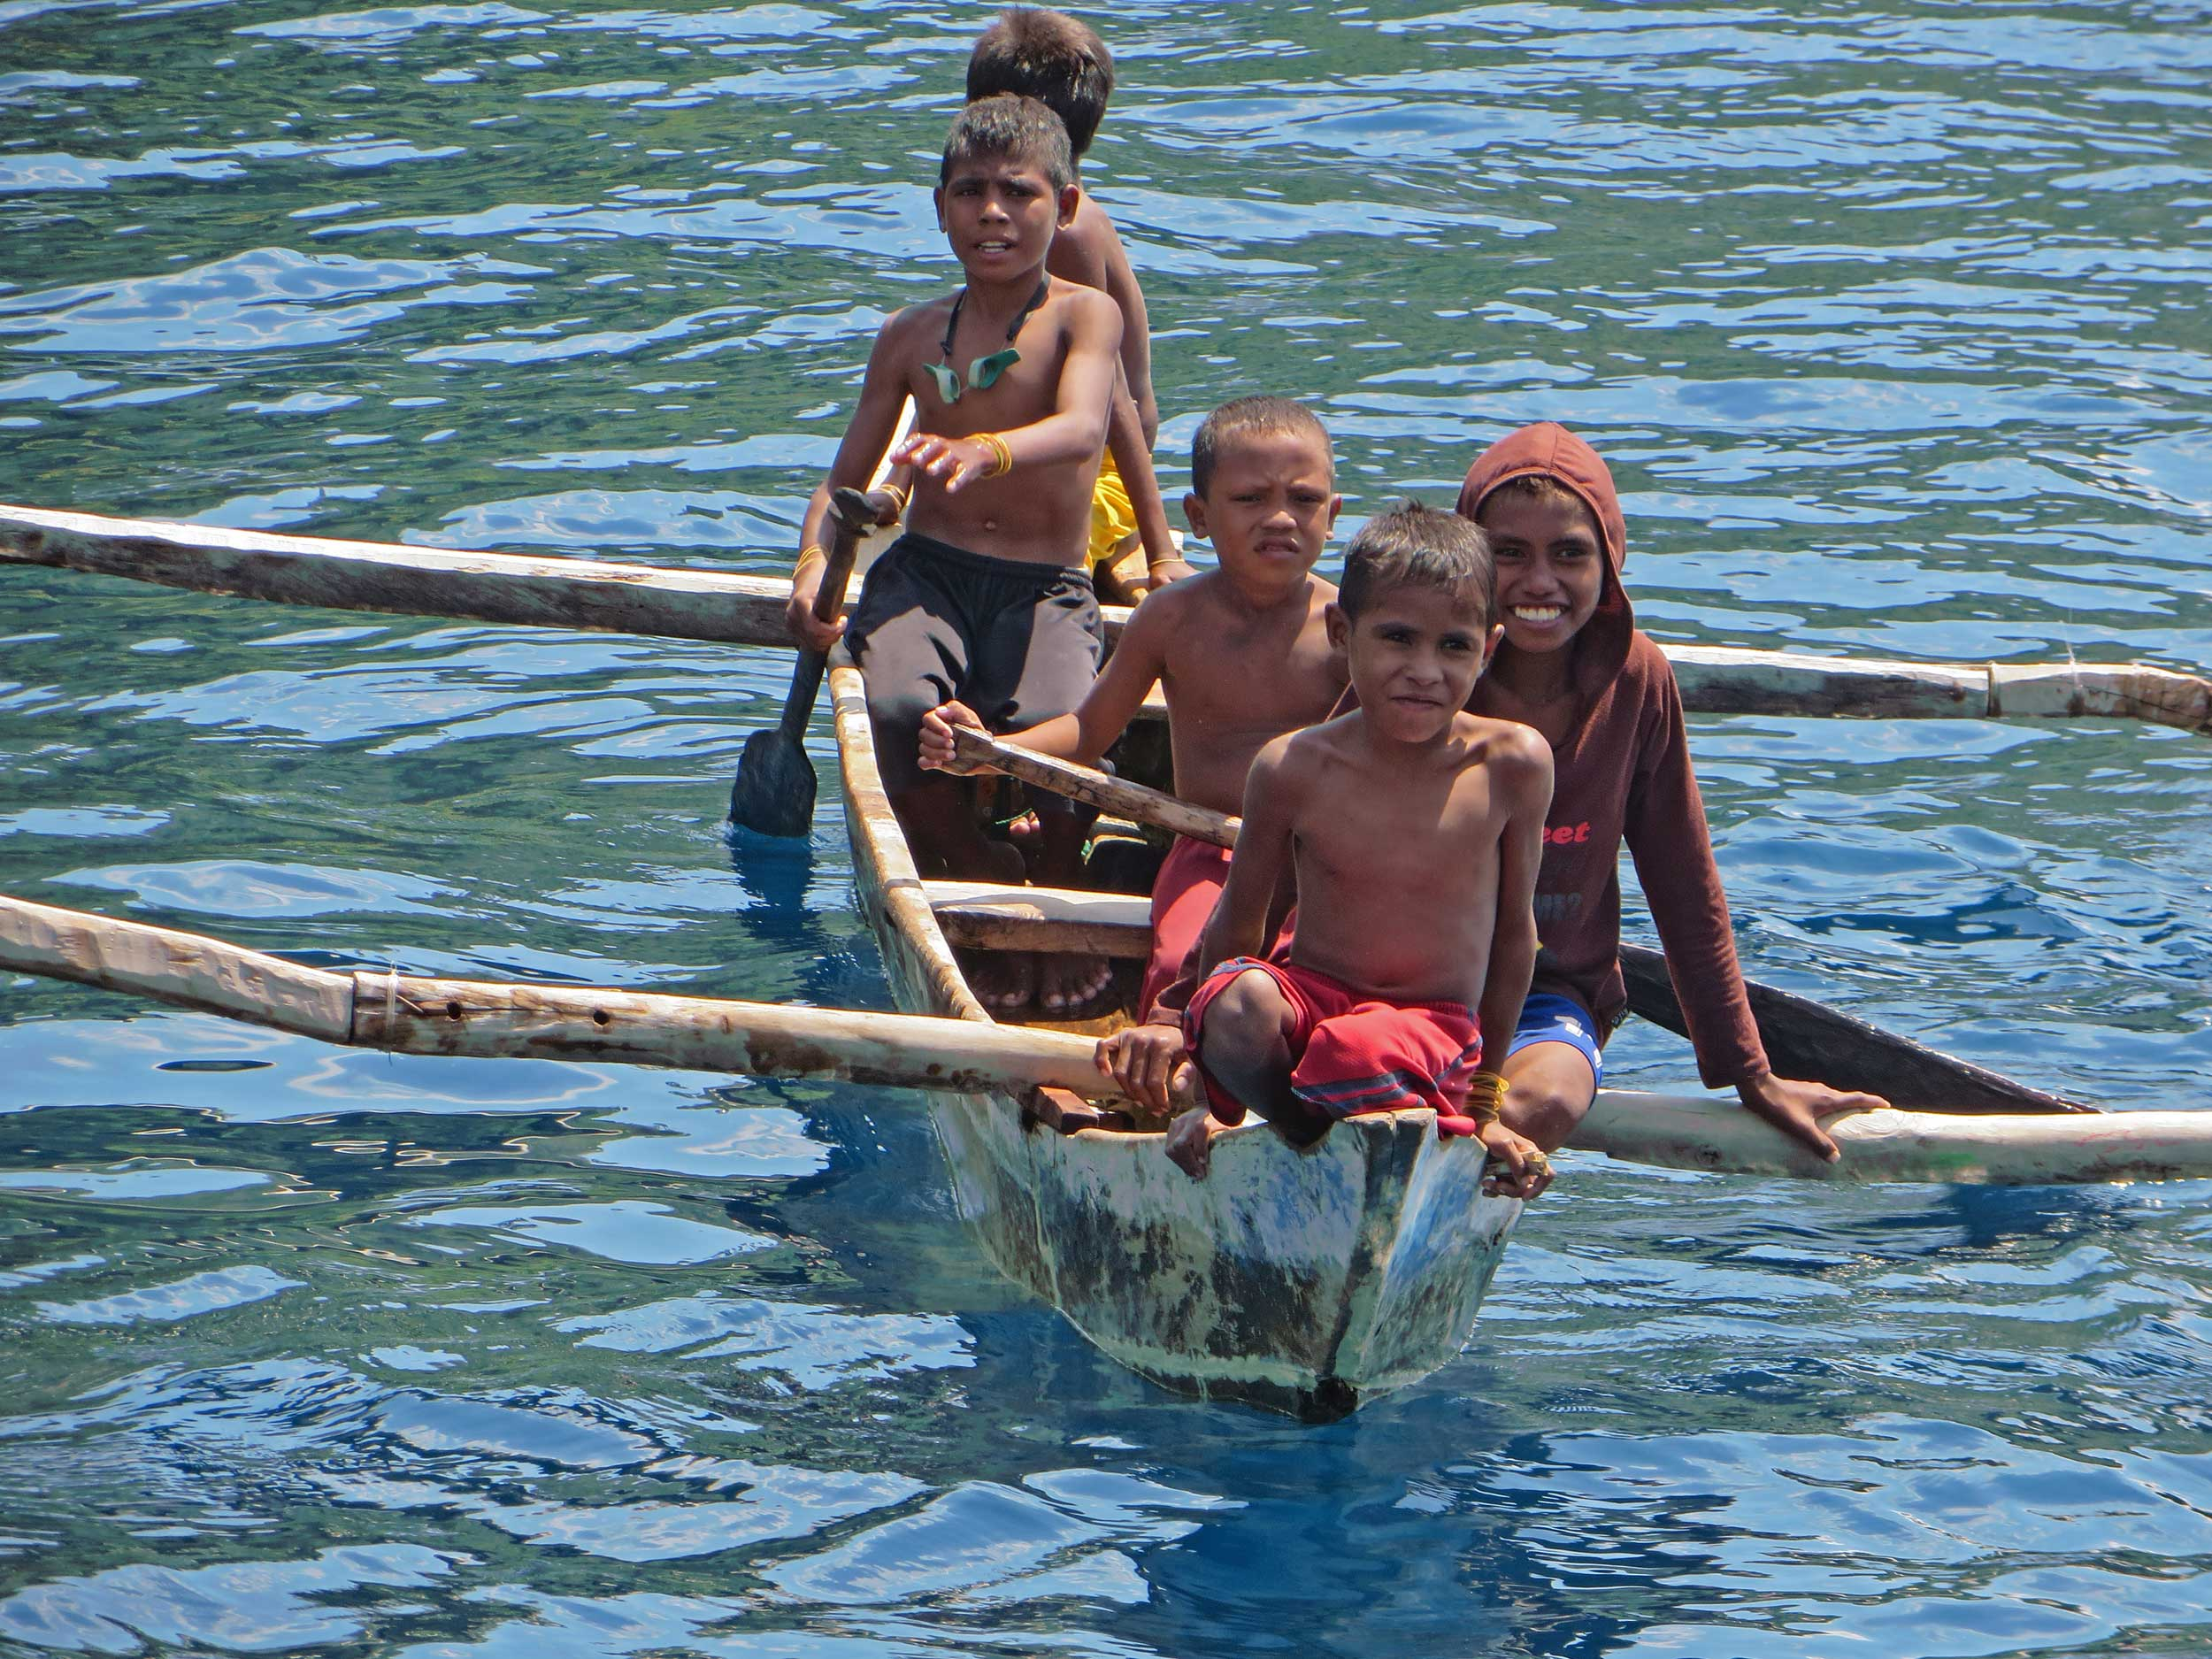 Five smiling village boys sailing on the water in an outrigger canoe